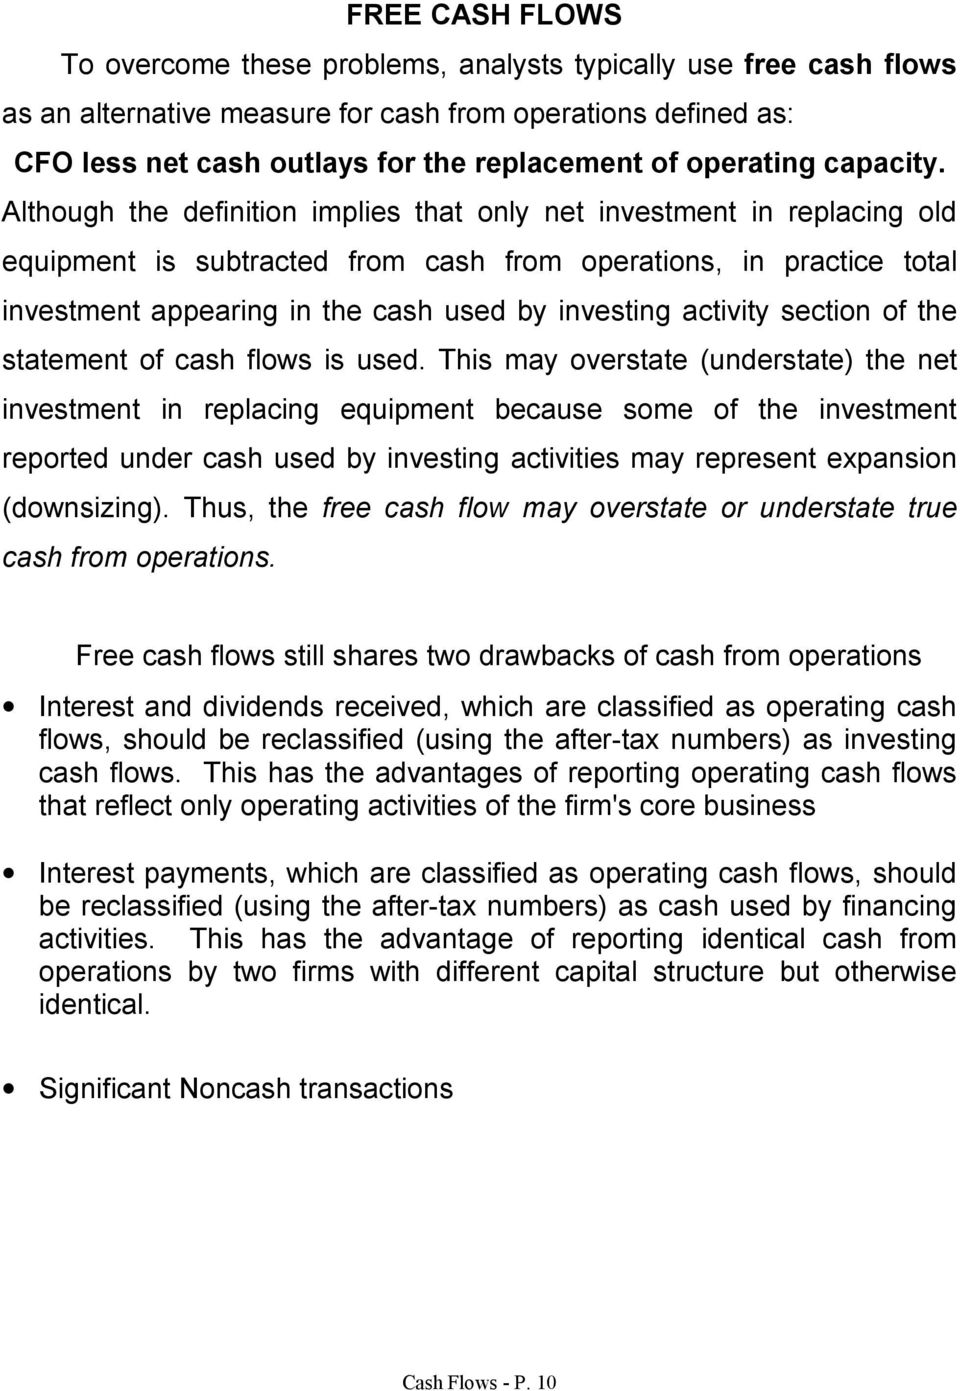 Although the definition implies that only net investment in replacing old equipment is subtracted from cash from operations, in practice total investment appearing in the cash used by investing